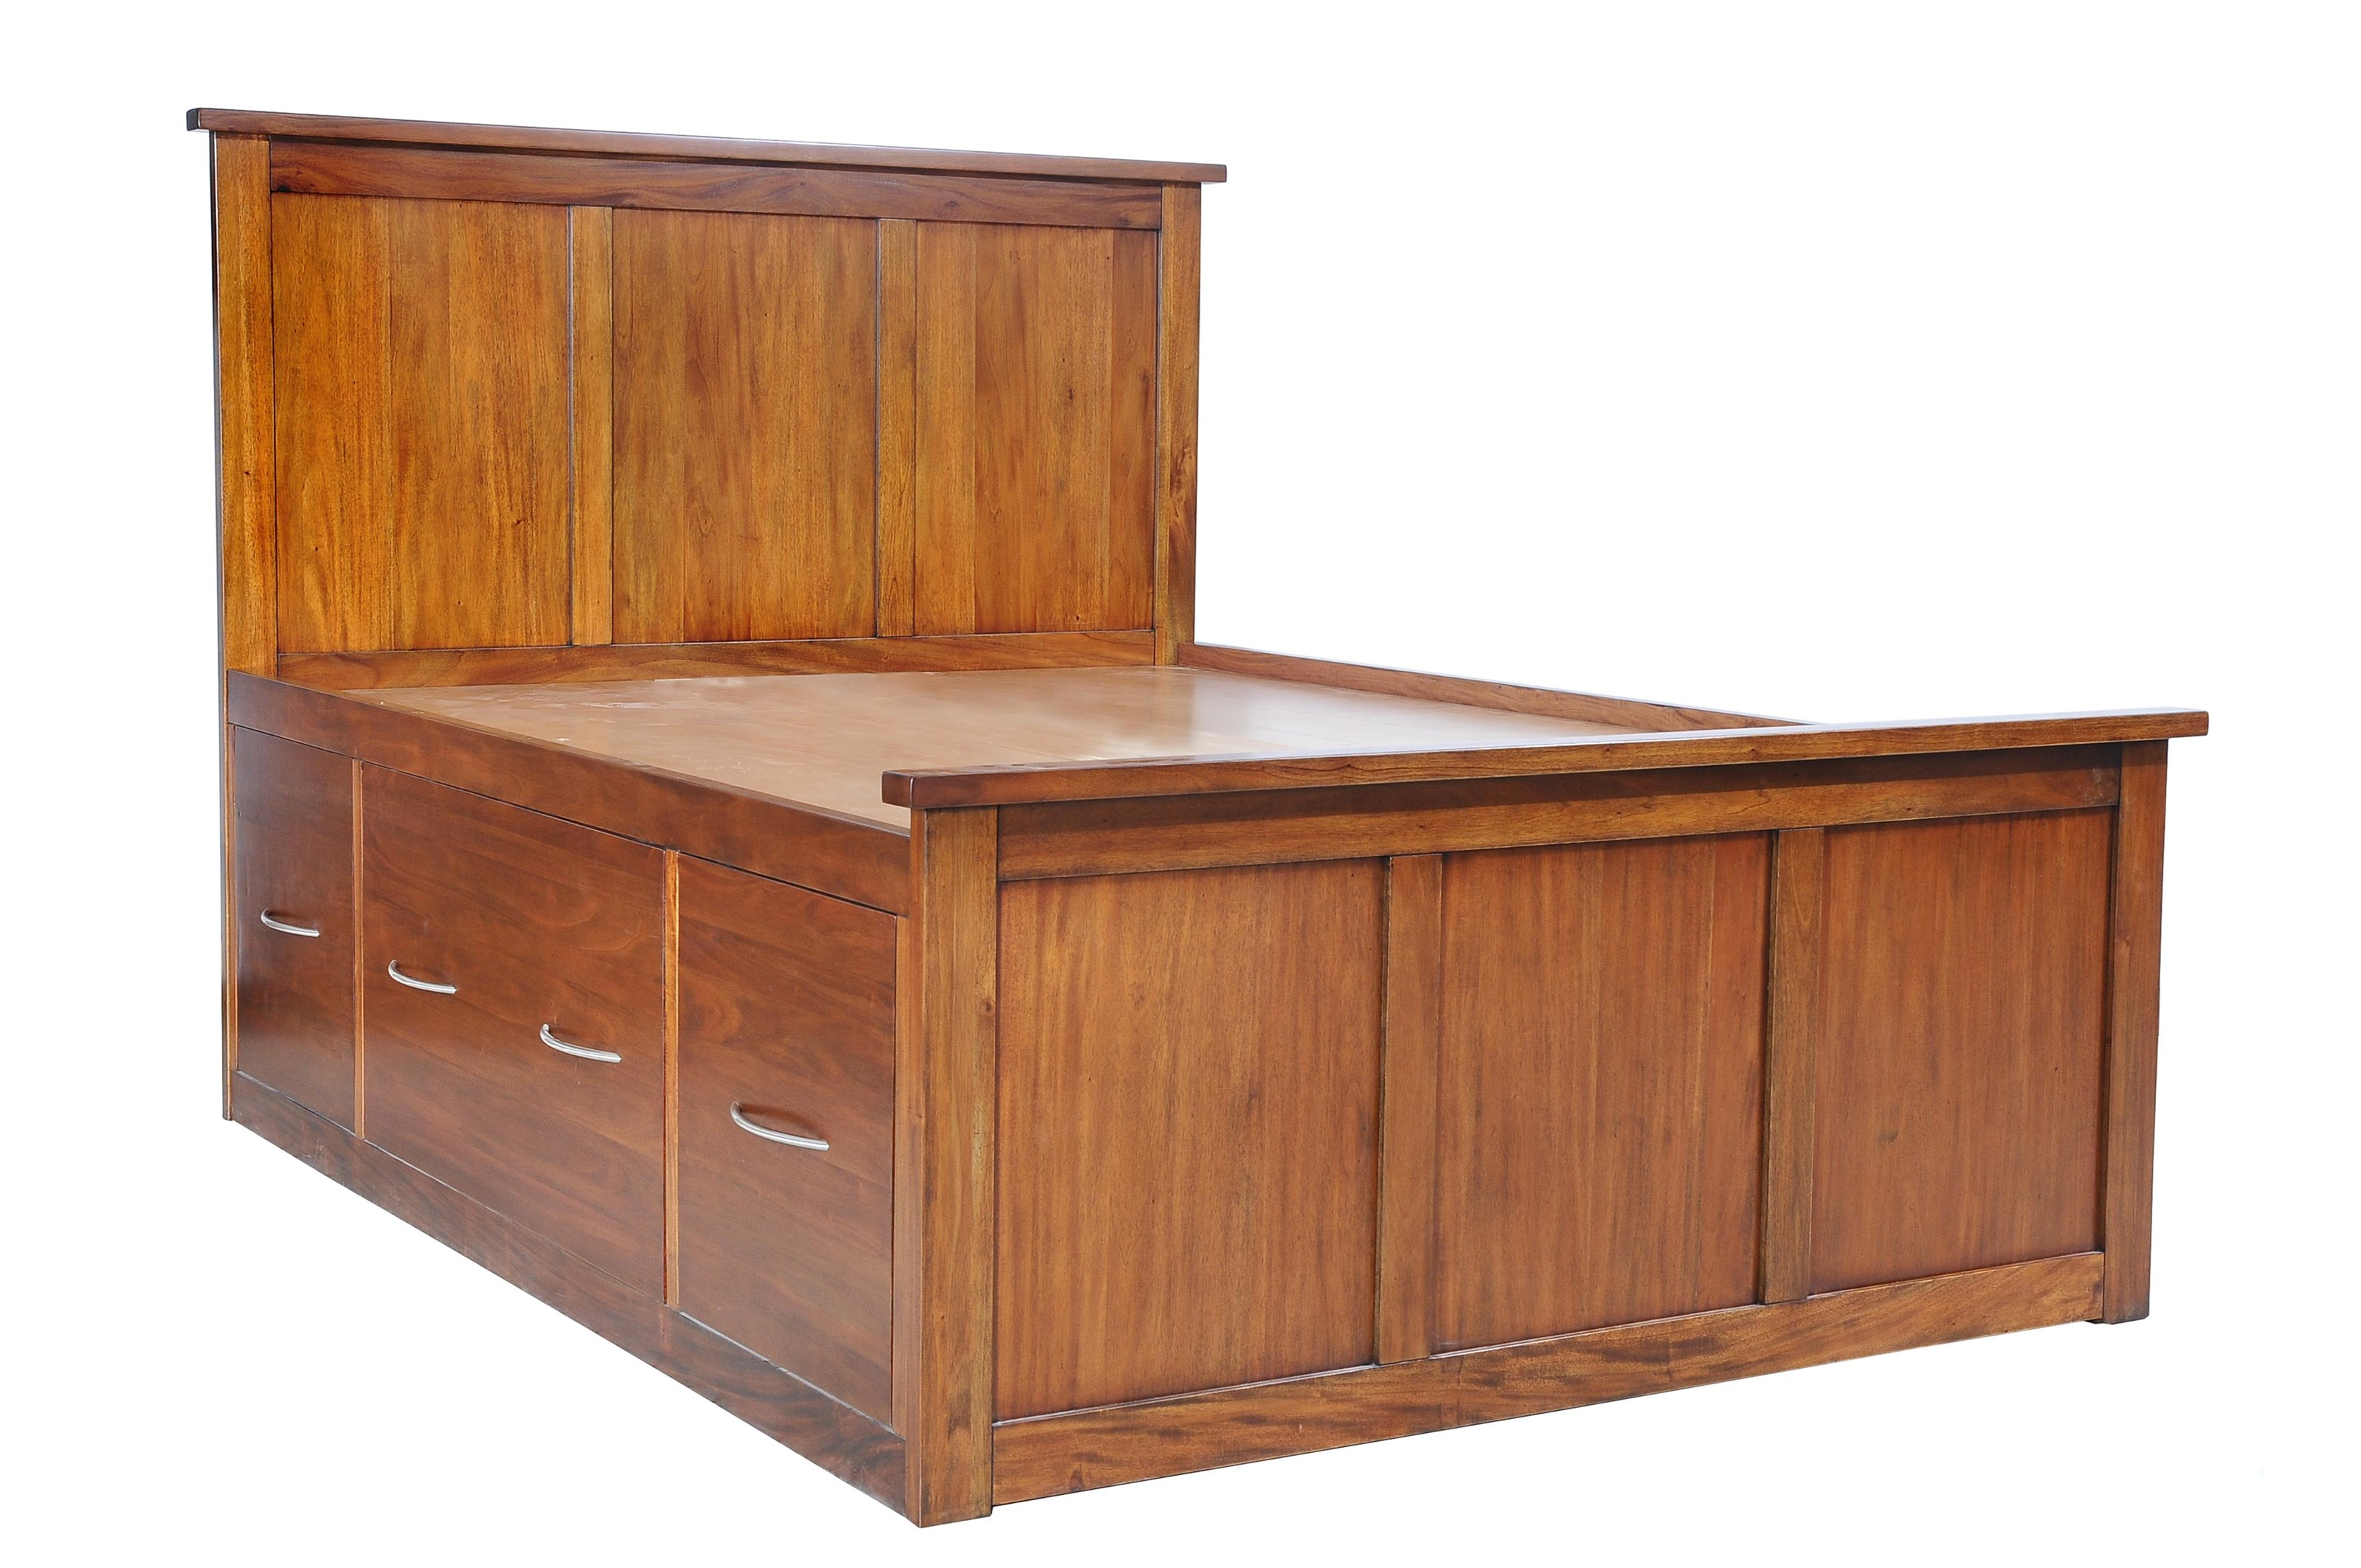 Boston Brownstone 9 Drawer Queen Bed by Napa Furniture Designs at HomeWorld Furniture